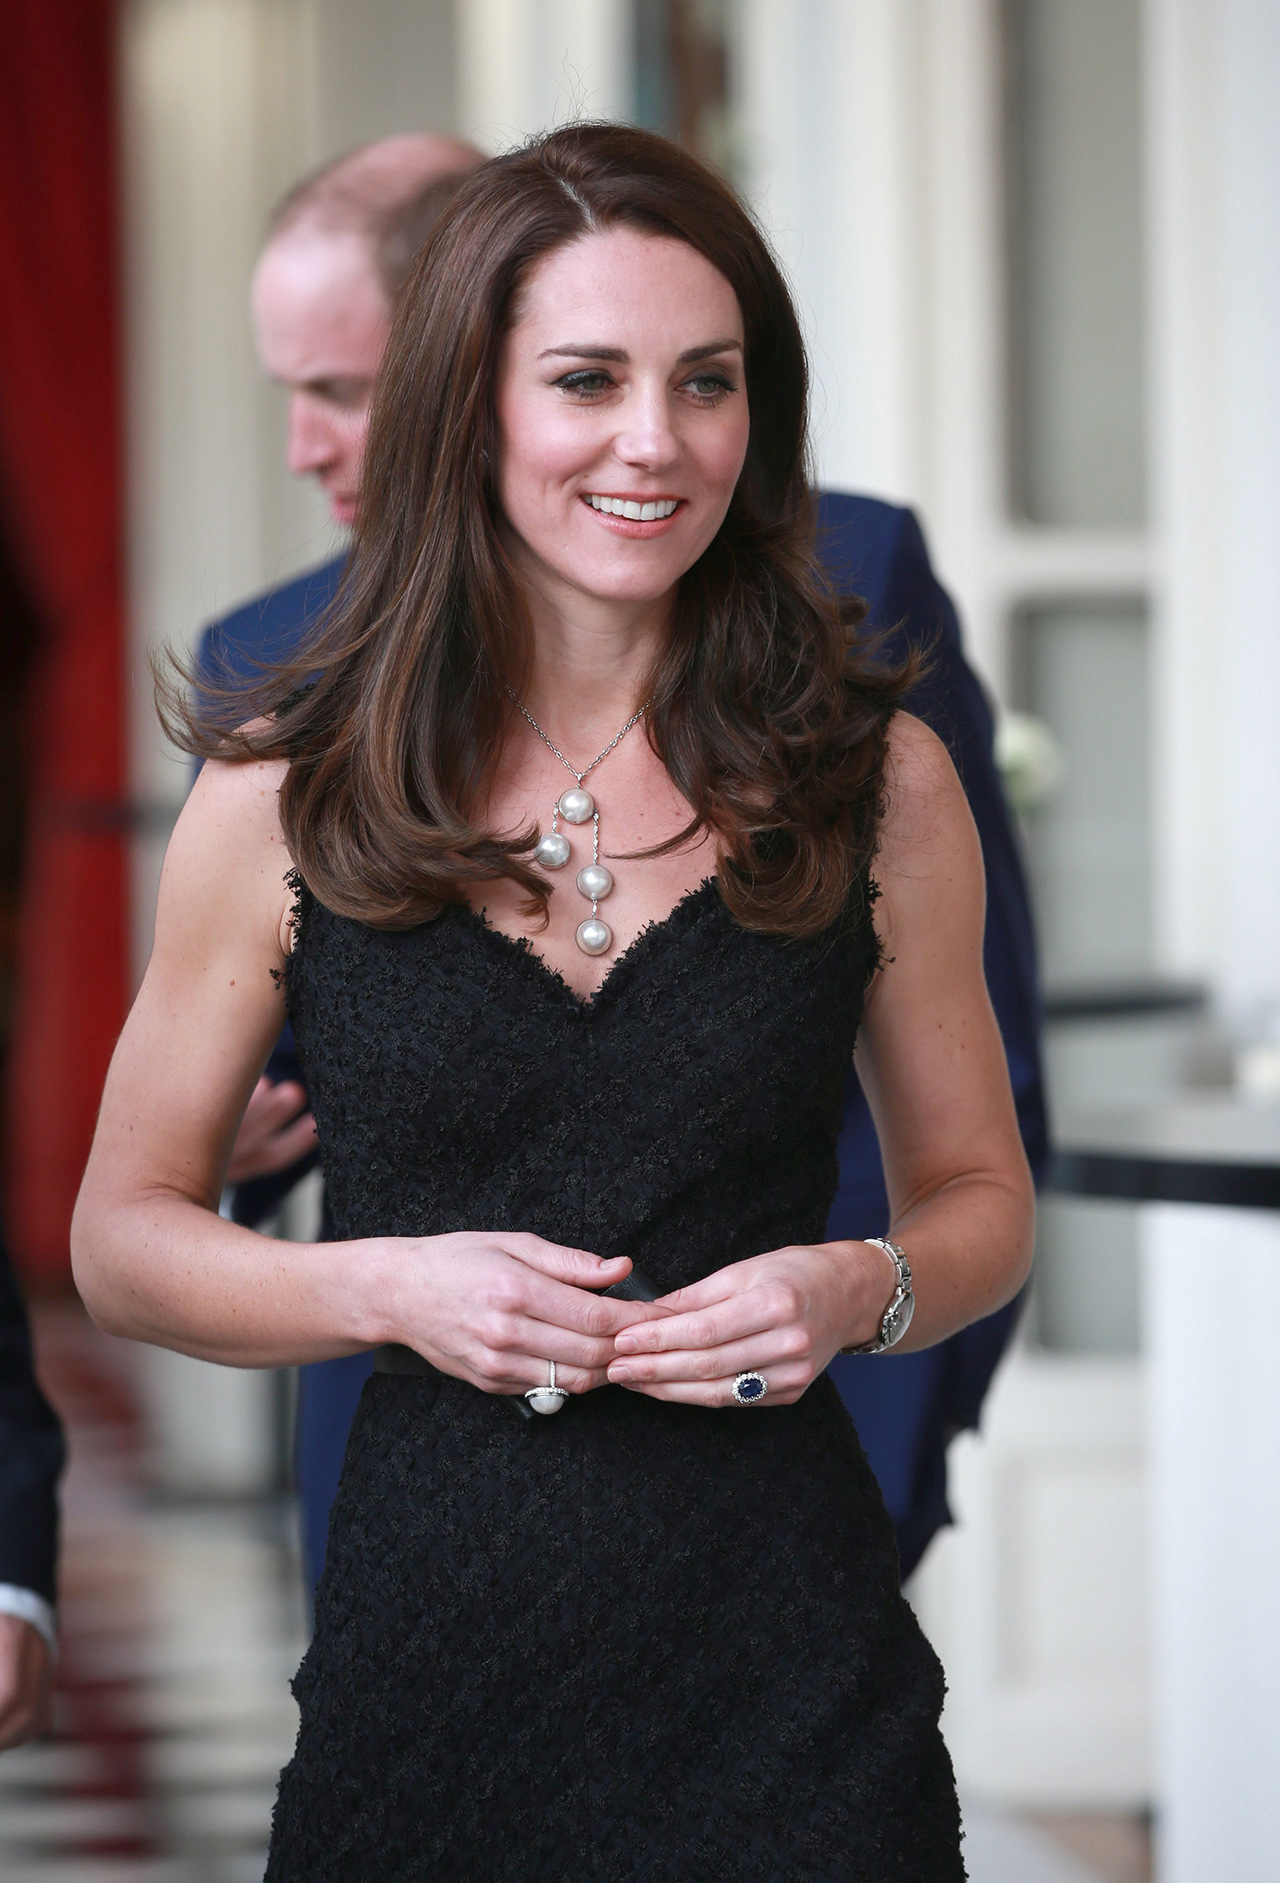 Kate Middleton Launches Early Years Research Results To